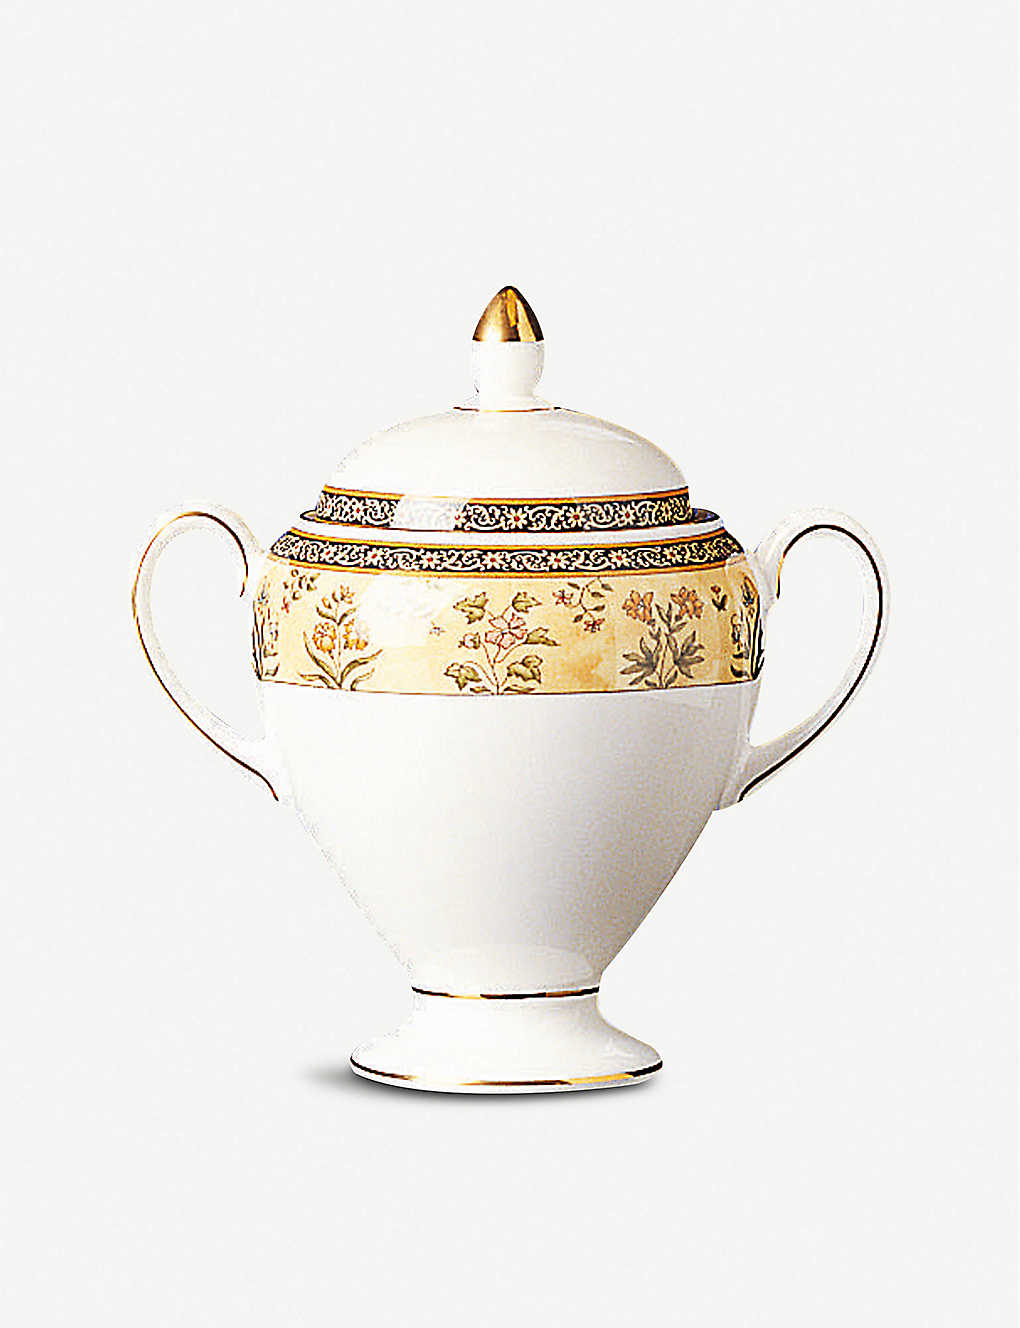 WEDGWOOD: India bone china sugar bowl 9.5cm